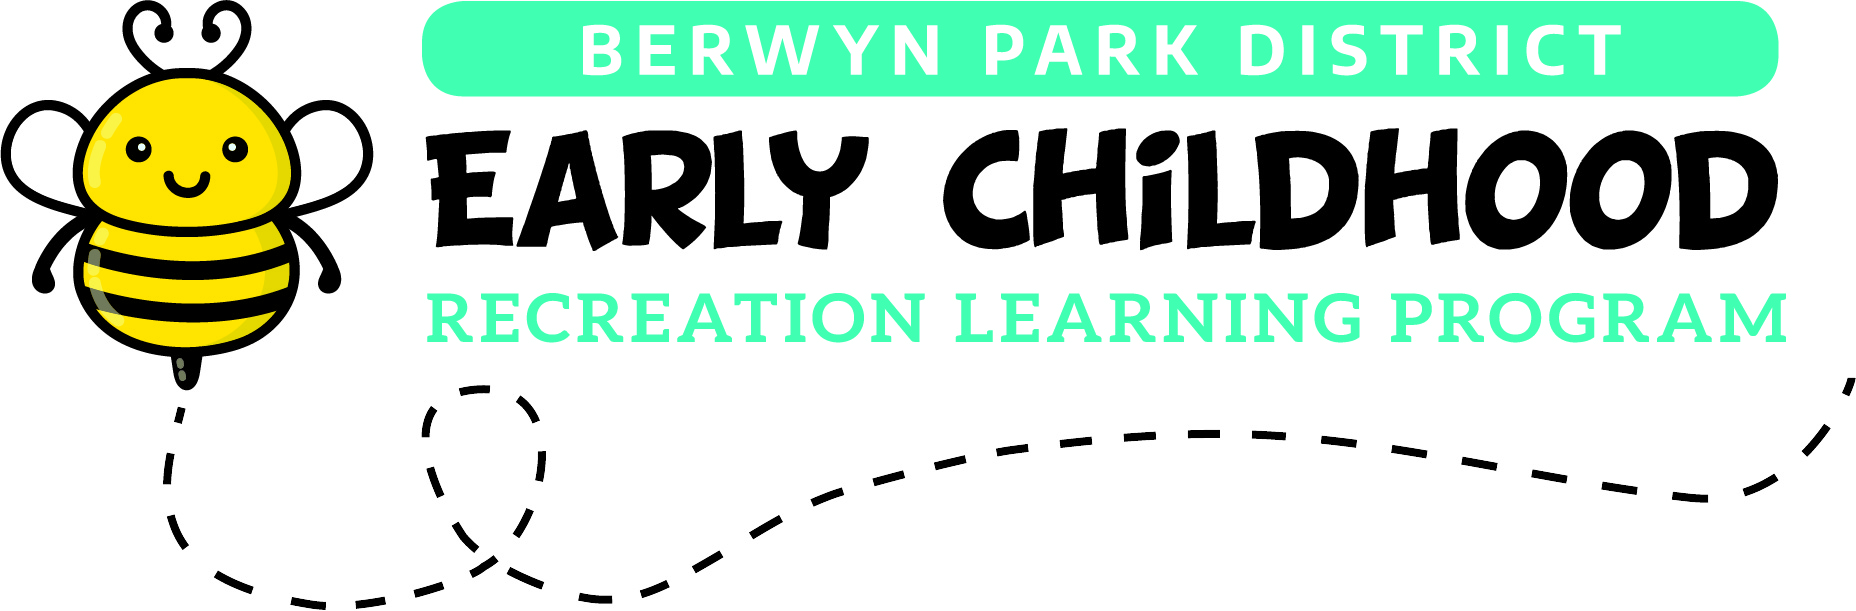 Early Childhood Recreation Learning Program